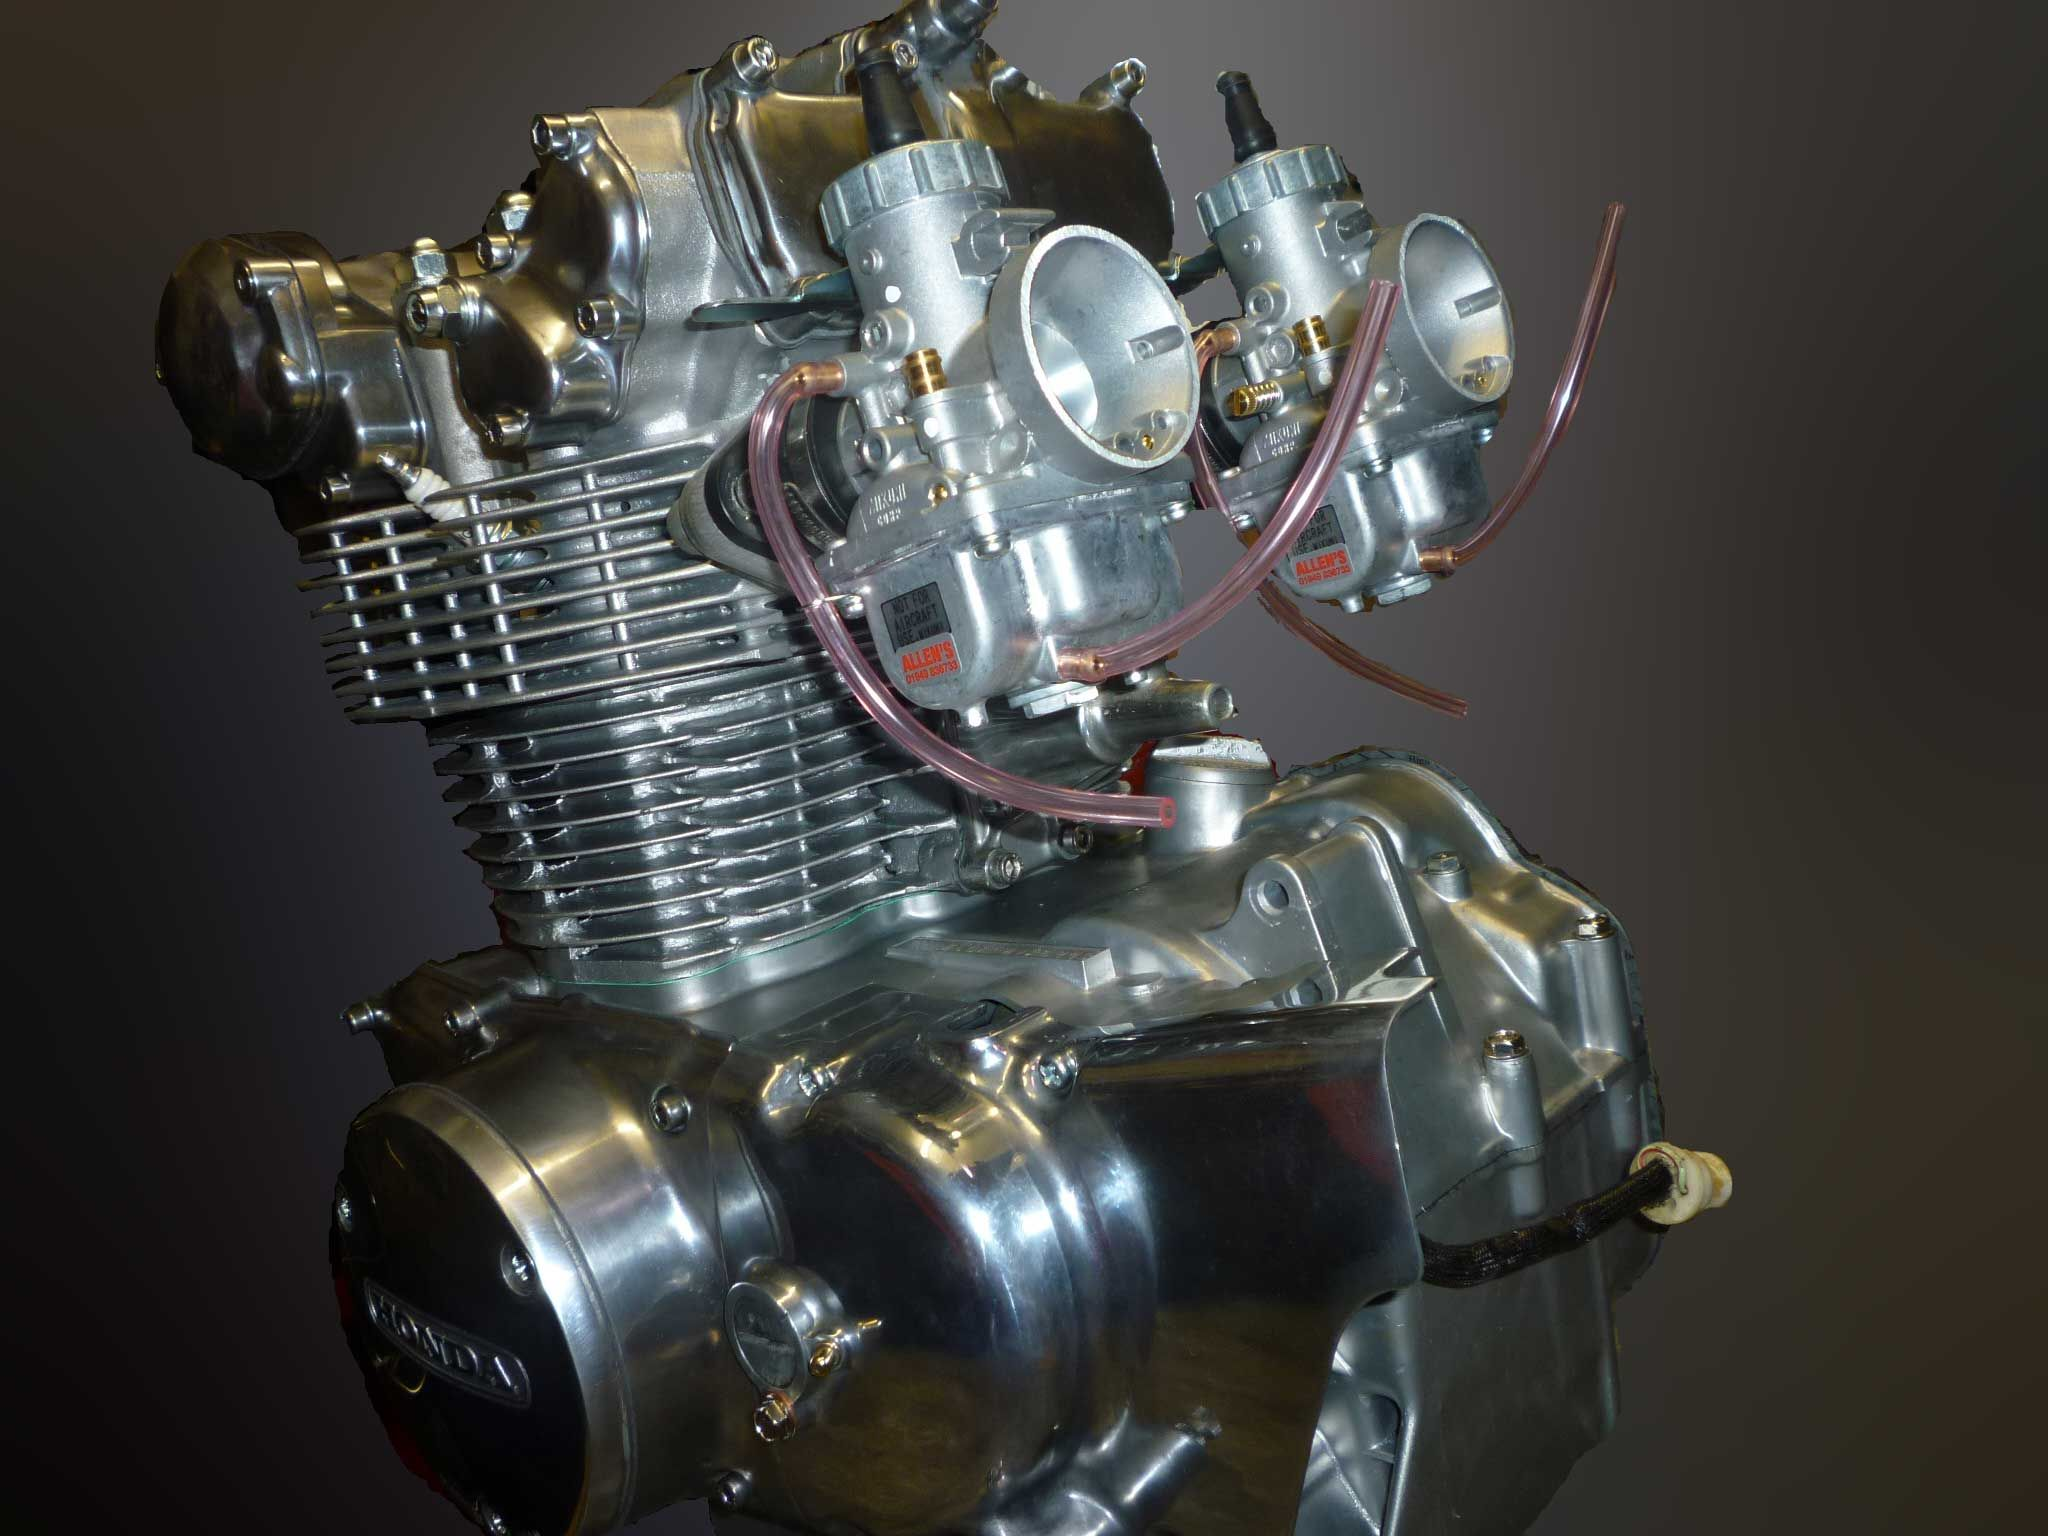 Honda CB450K Race Engine, specifications as to the engine